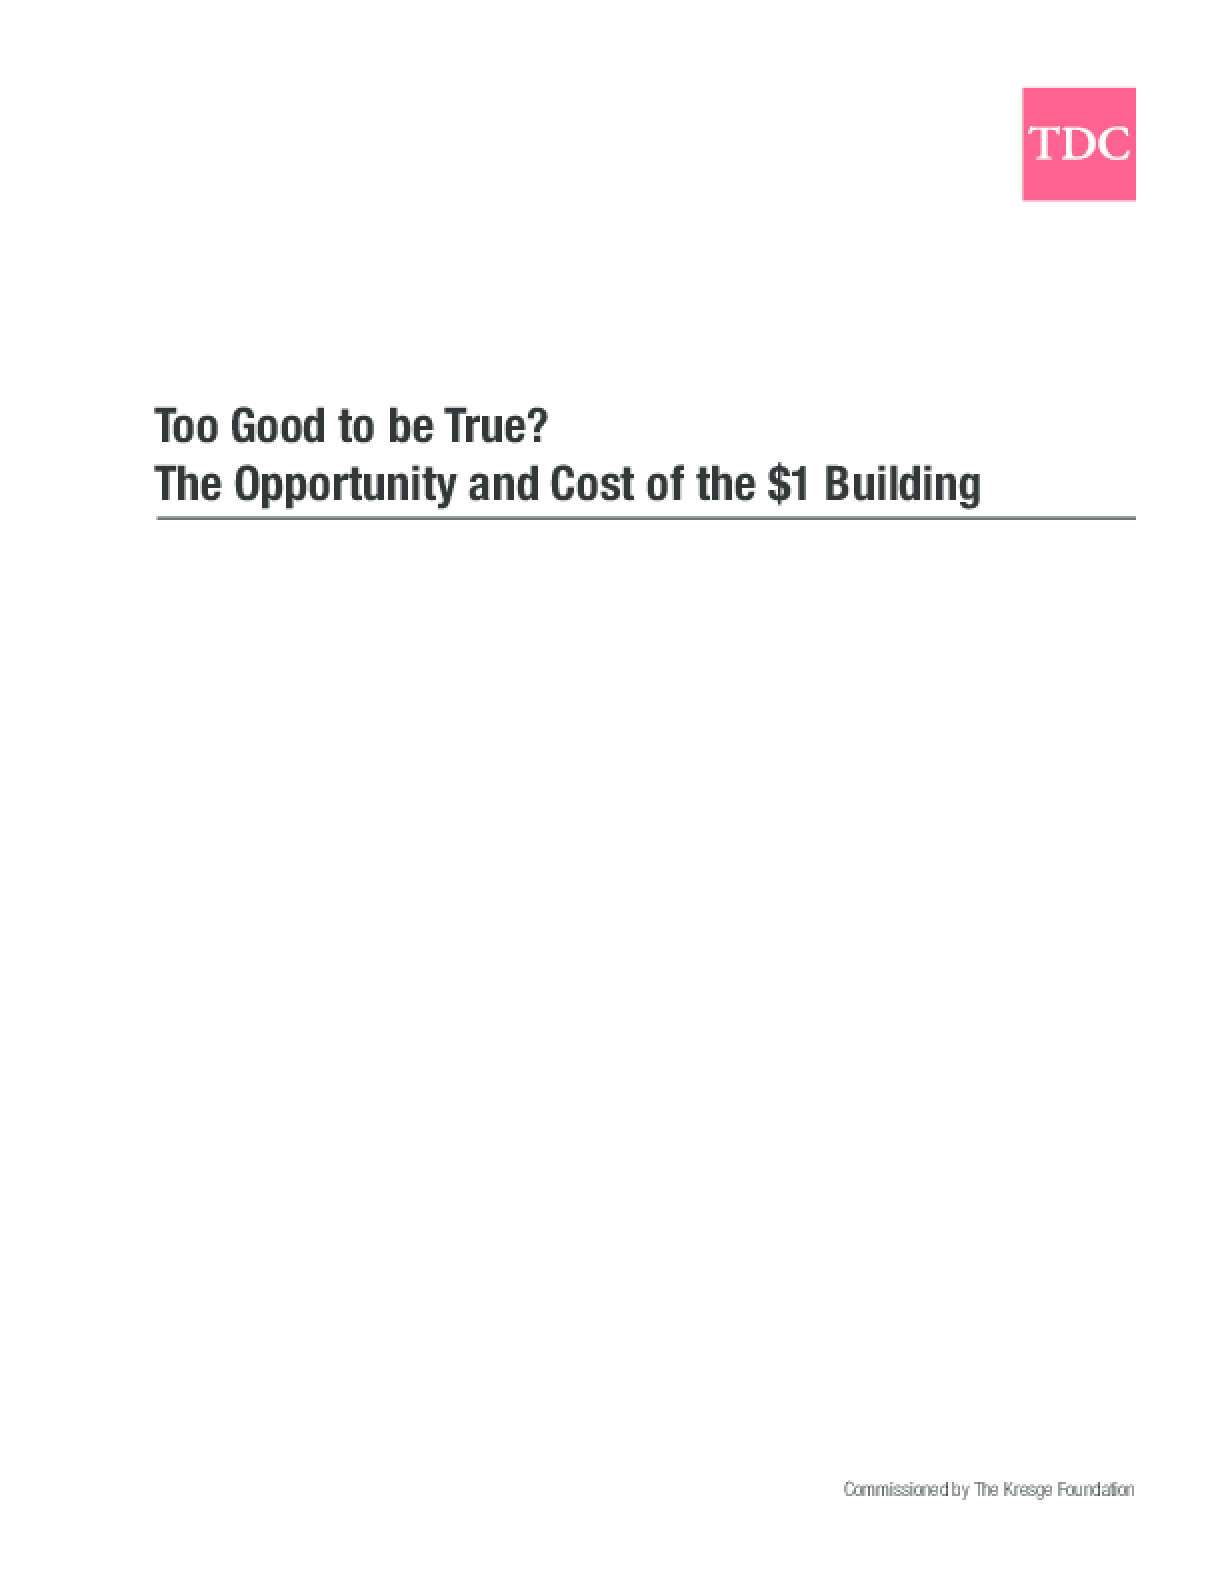 Too Good to be True?: The Opportunity and Cost of the $1 Building